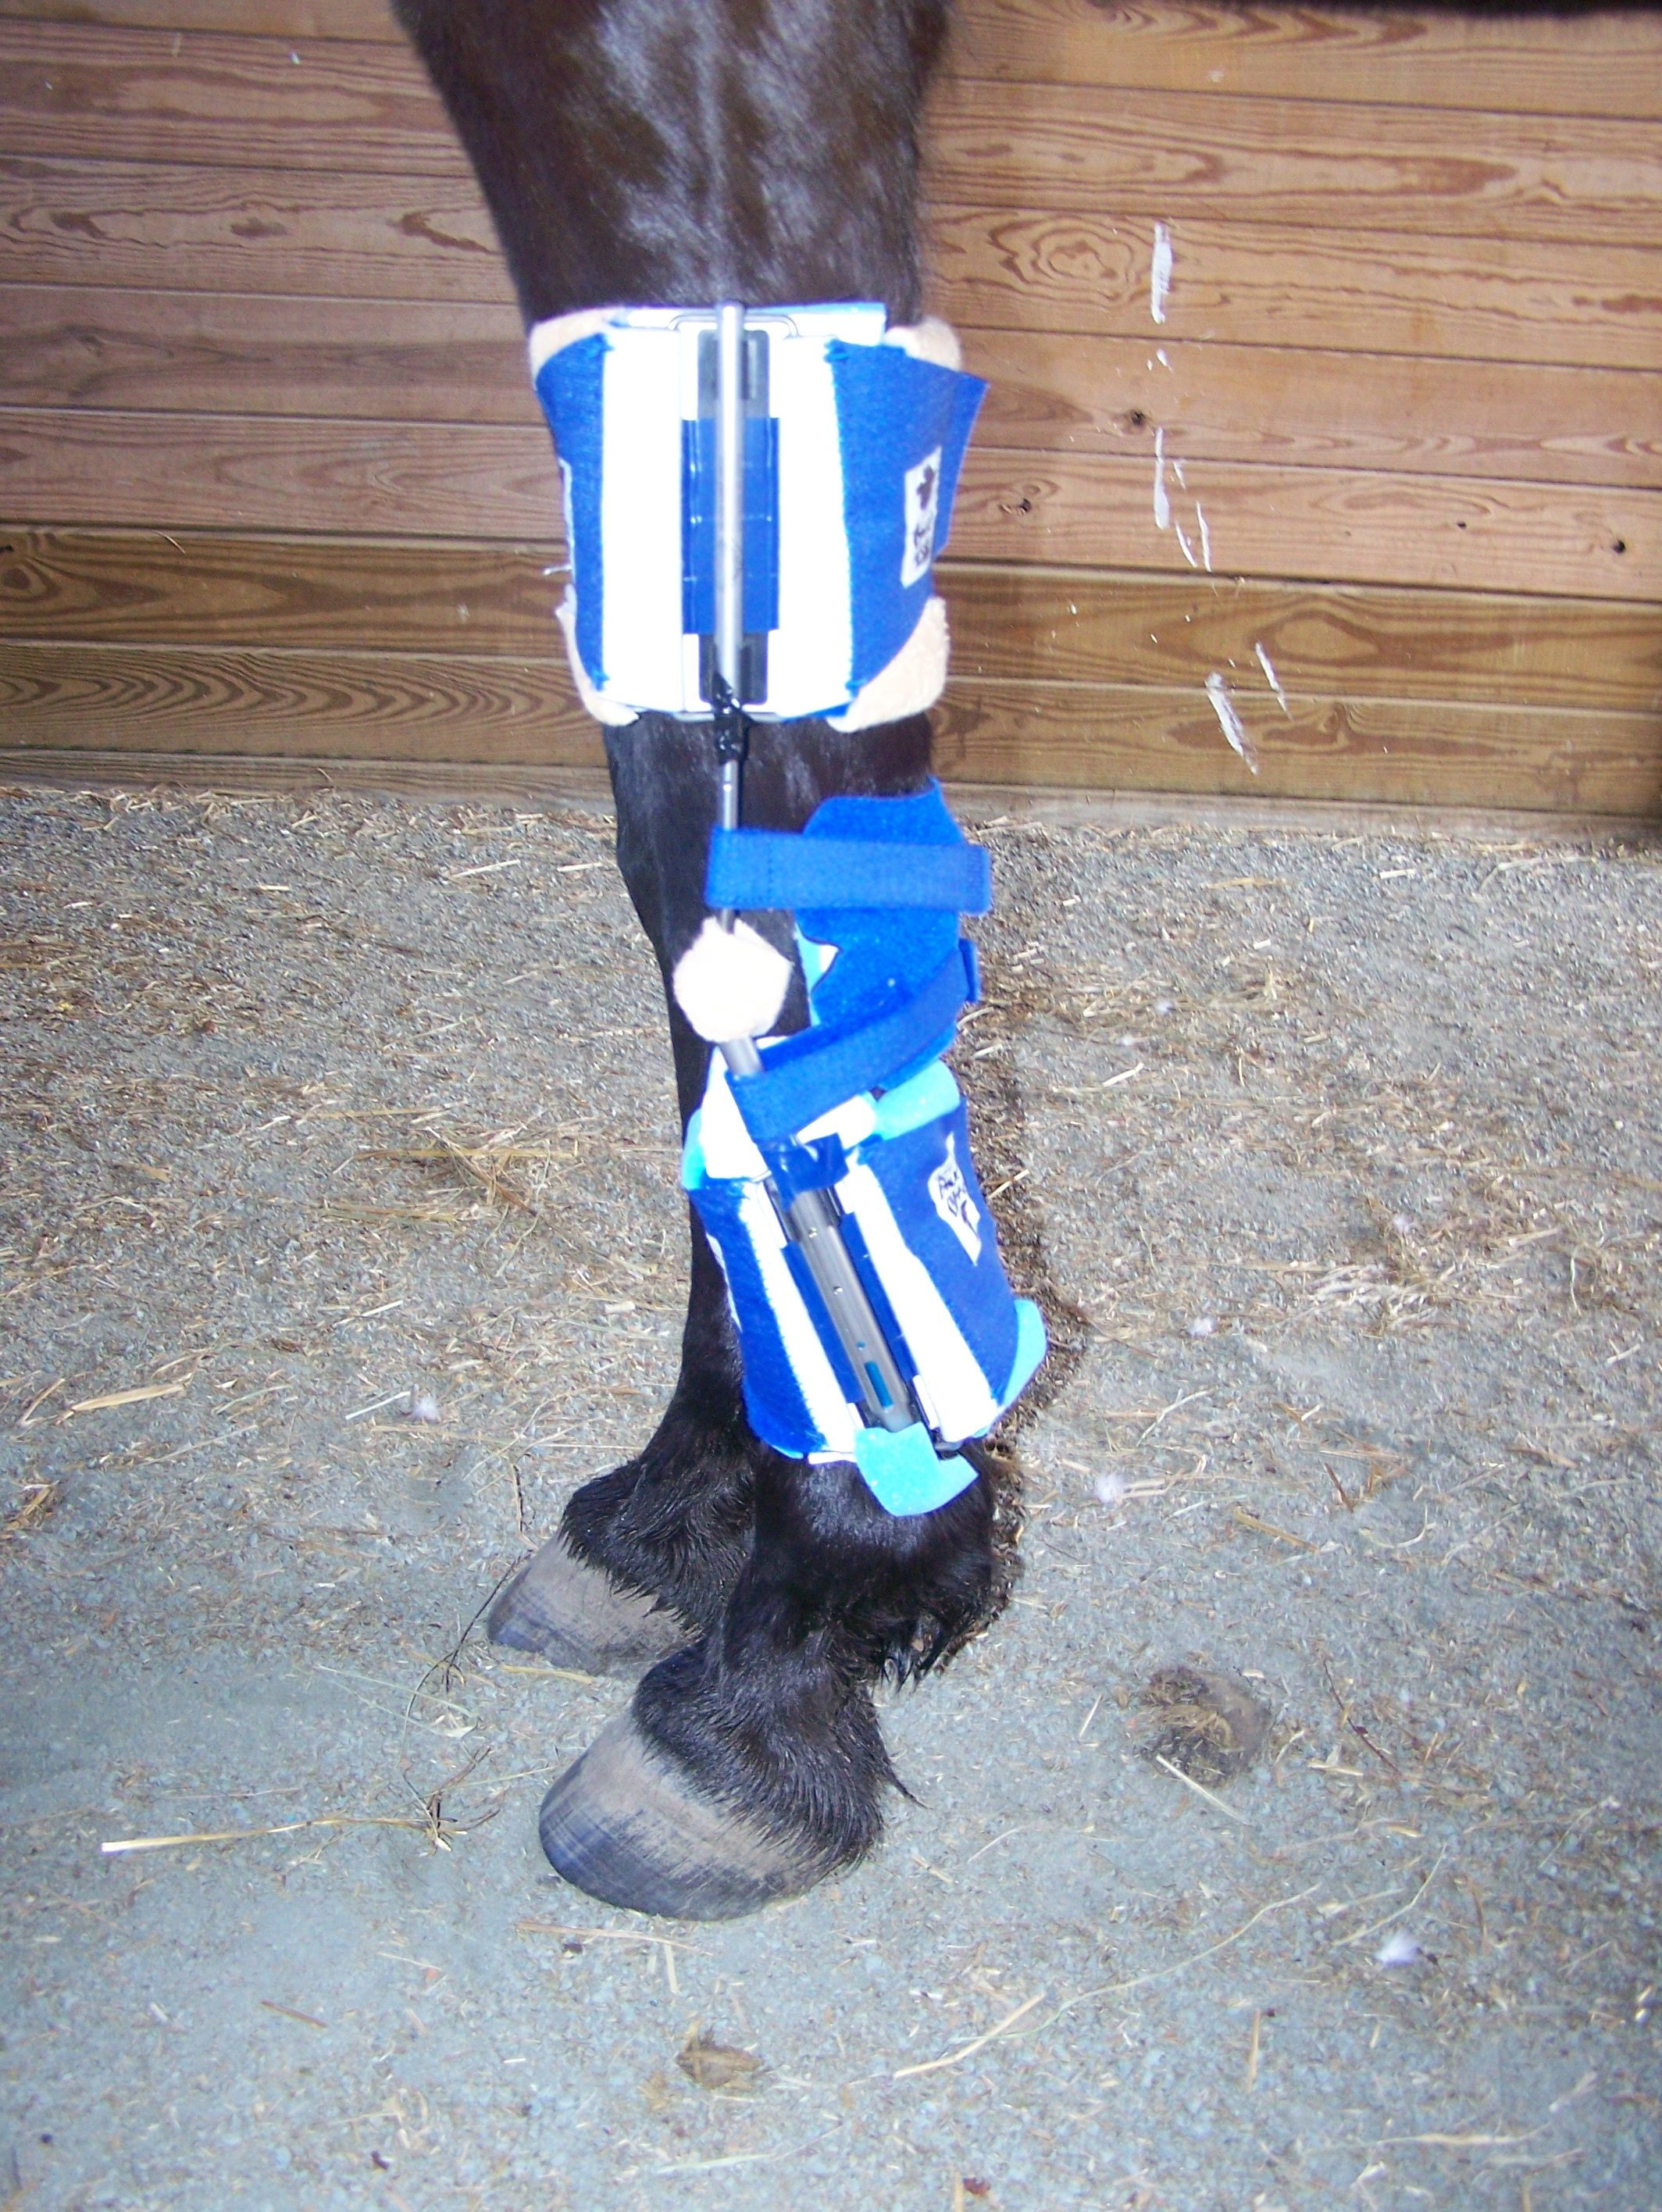 Horse equine physical therapy - Our Dynamic Splints For Horses Allow Veterinarians To Rehabilitate Equine Joints And Muscles More Effectively Than Physical Therapy Alone